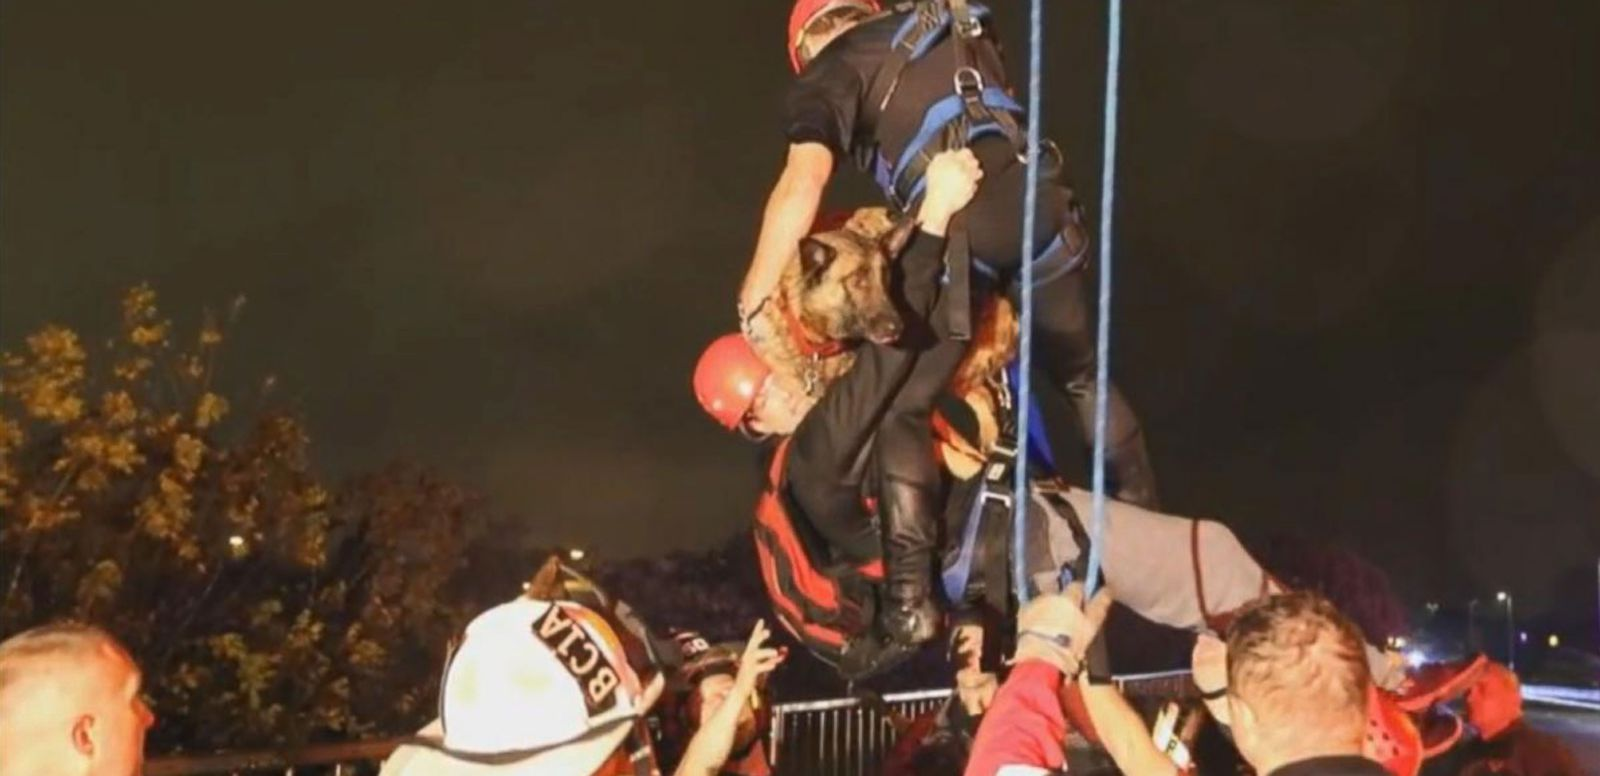 VIDEO: Man and Dog Rescued From Floodwaters in Texas